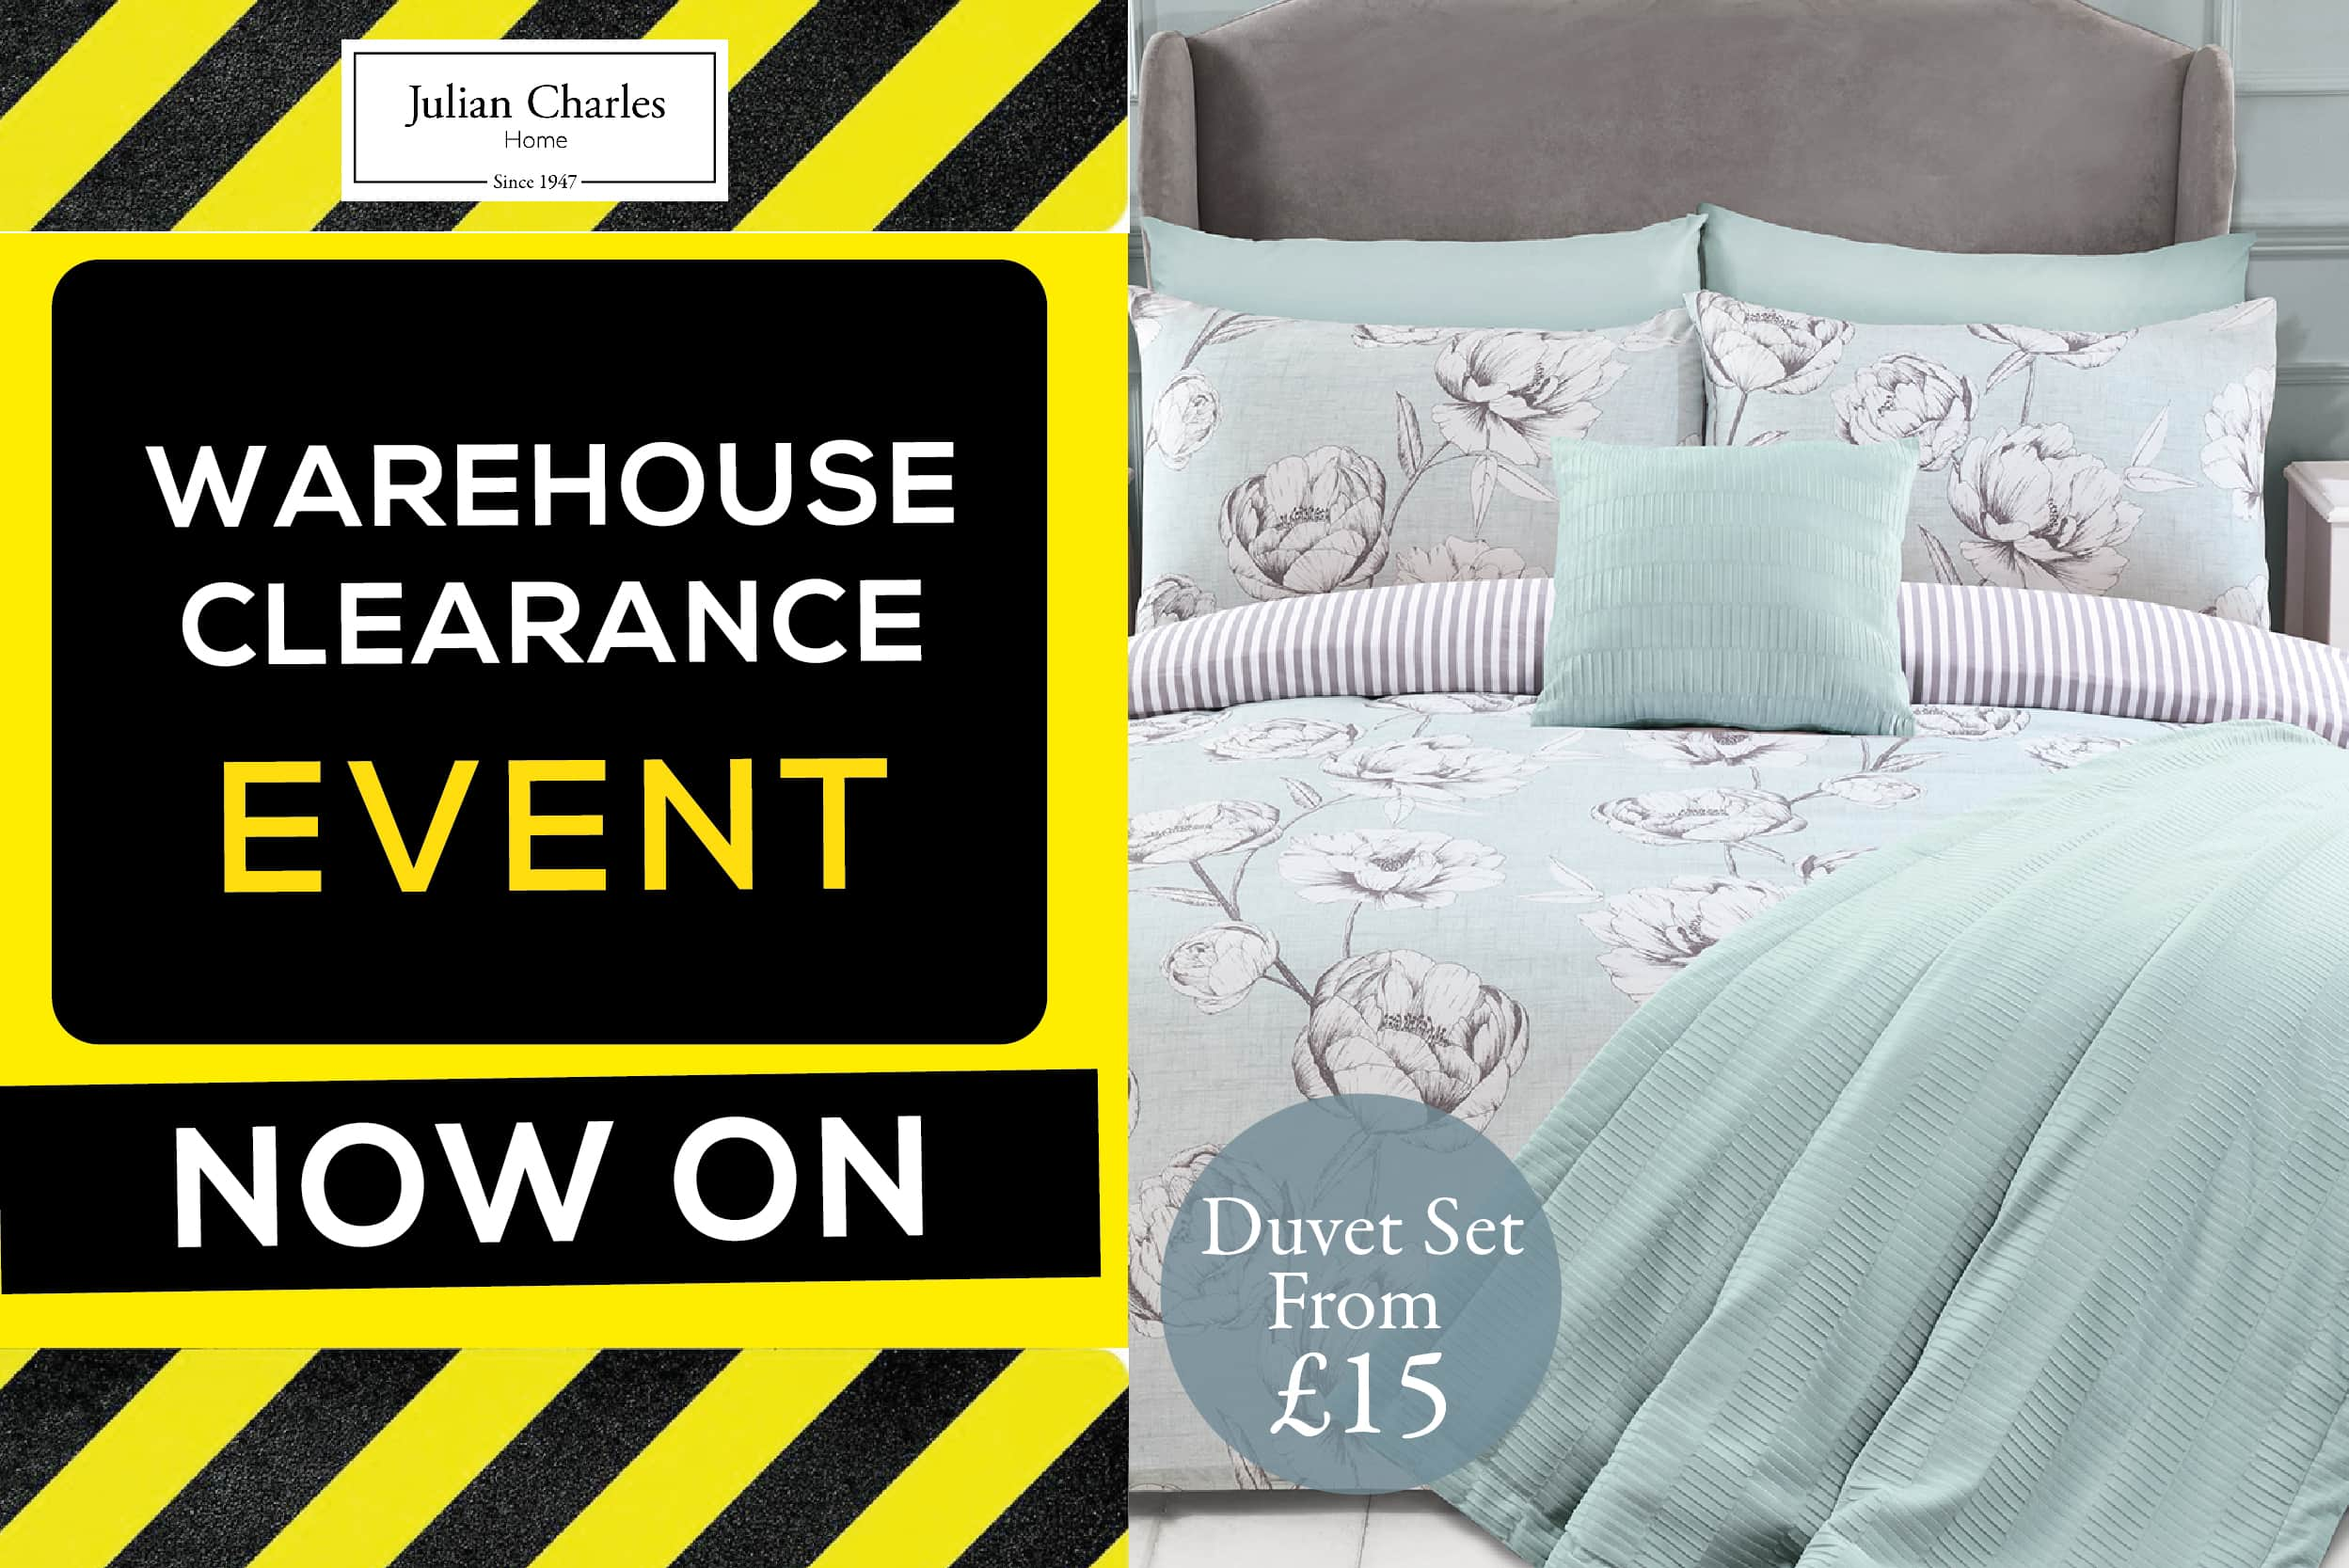 Julian Charles Warehouse Clearance Now On